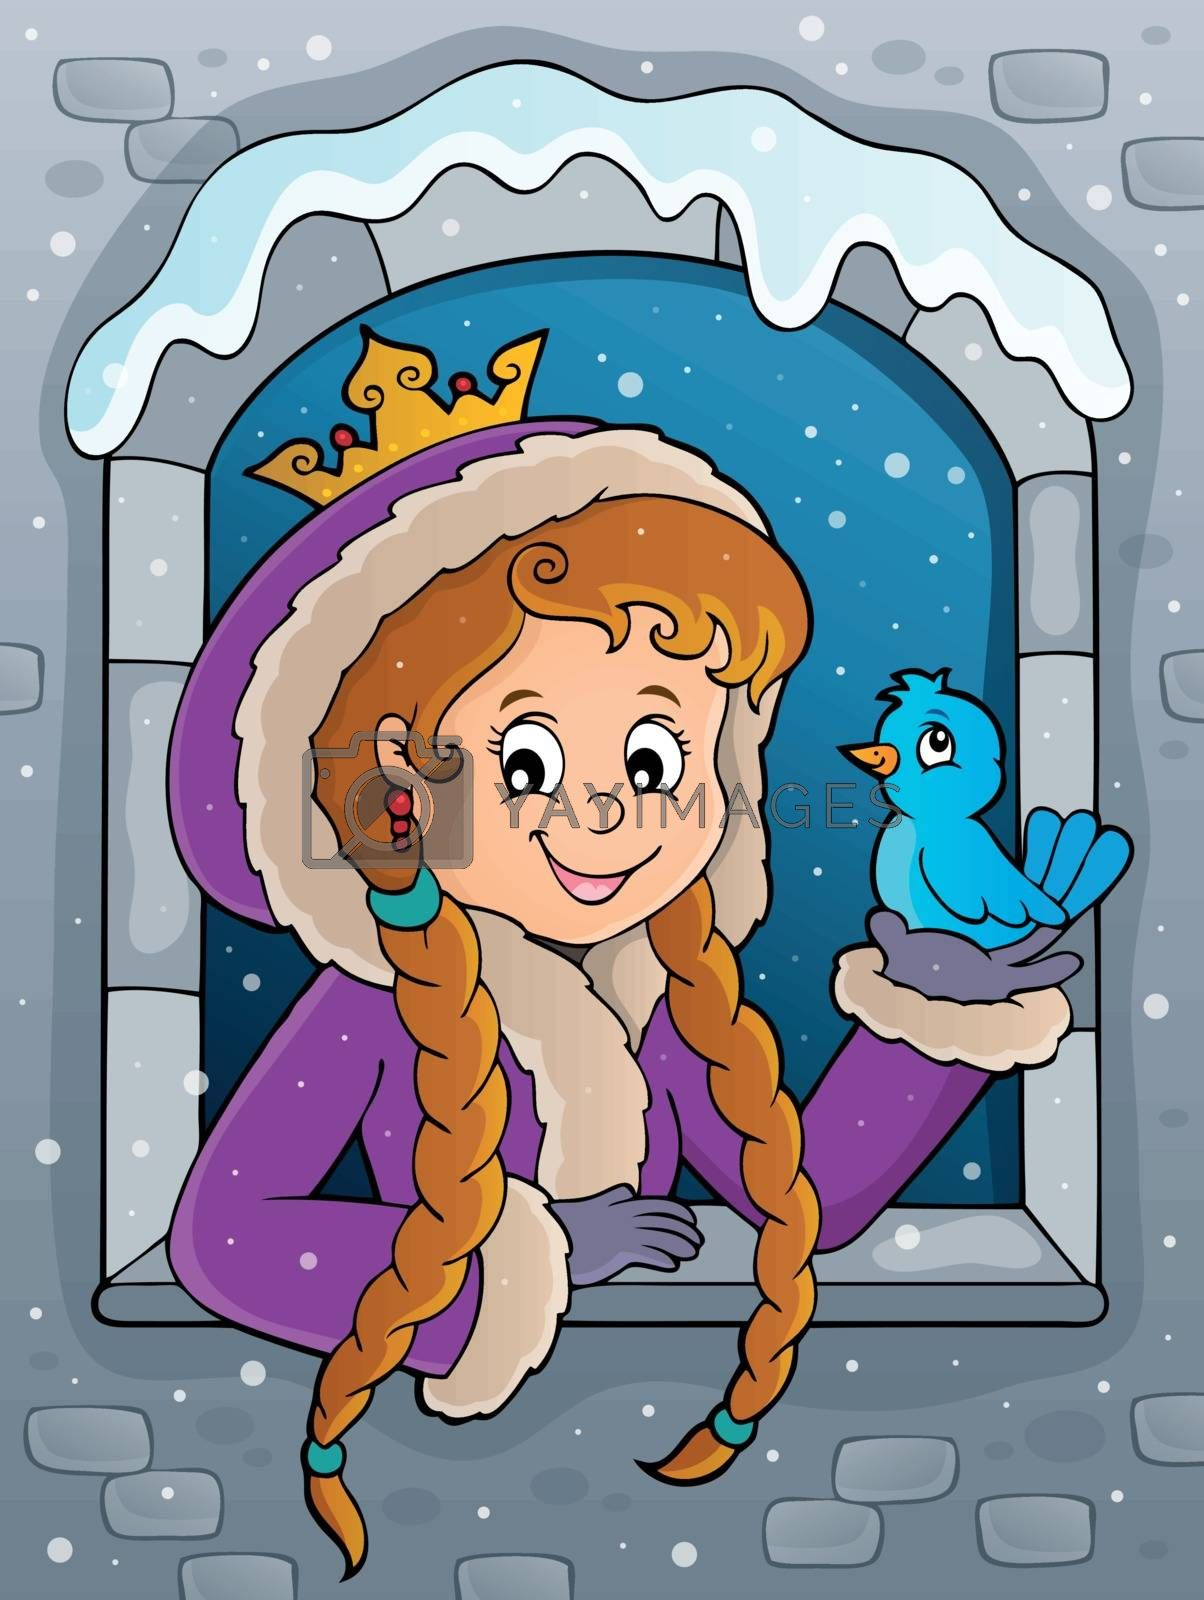 Princess in winter window theme image 2 - eps10 vector illustration.